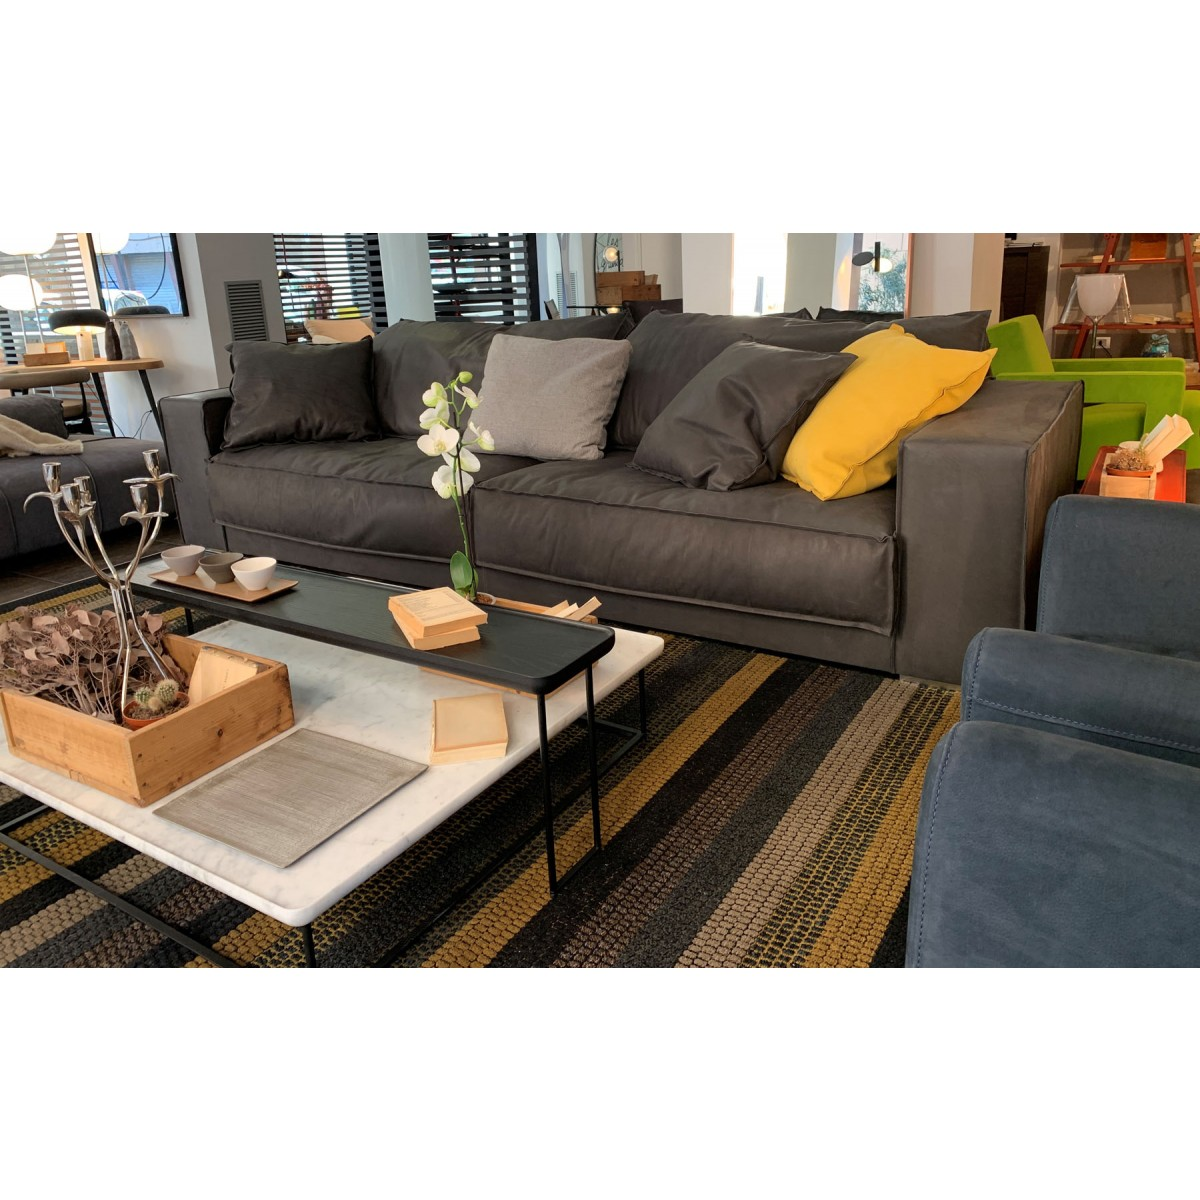 Full Size of Baxter Sofa Italy Jonathan Adler Budapest Housse Furniture List Casablanca Ez Living Couch Chester Moon Preis Paola Navone Criteria Collection Sale Tactile Sofa Baxter Sofa